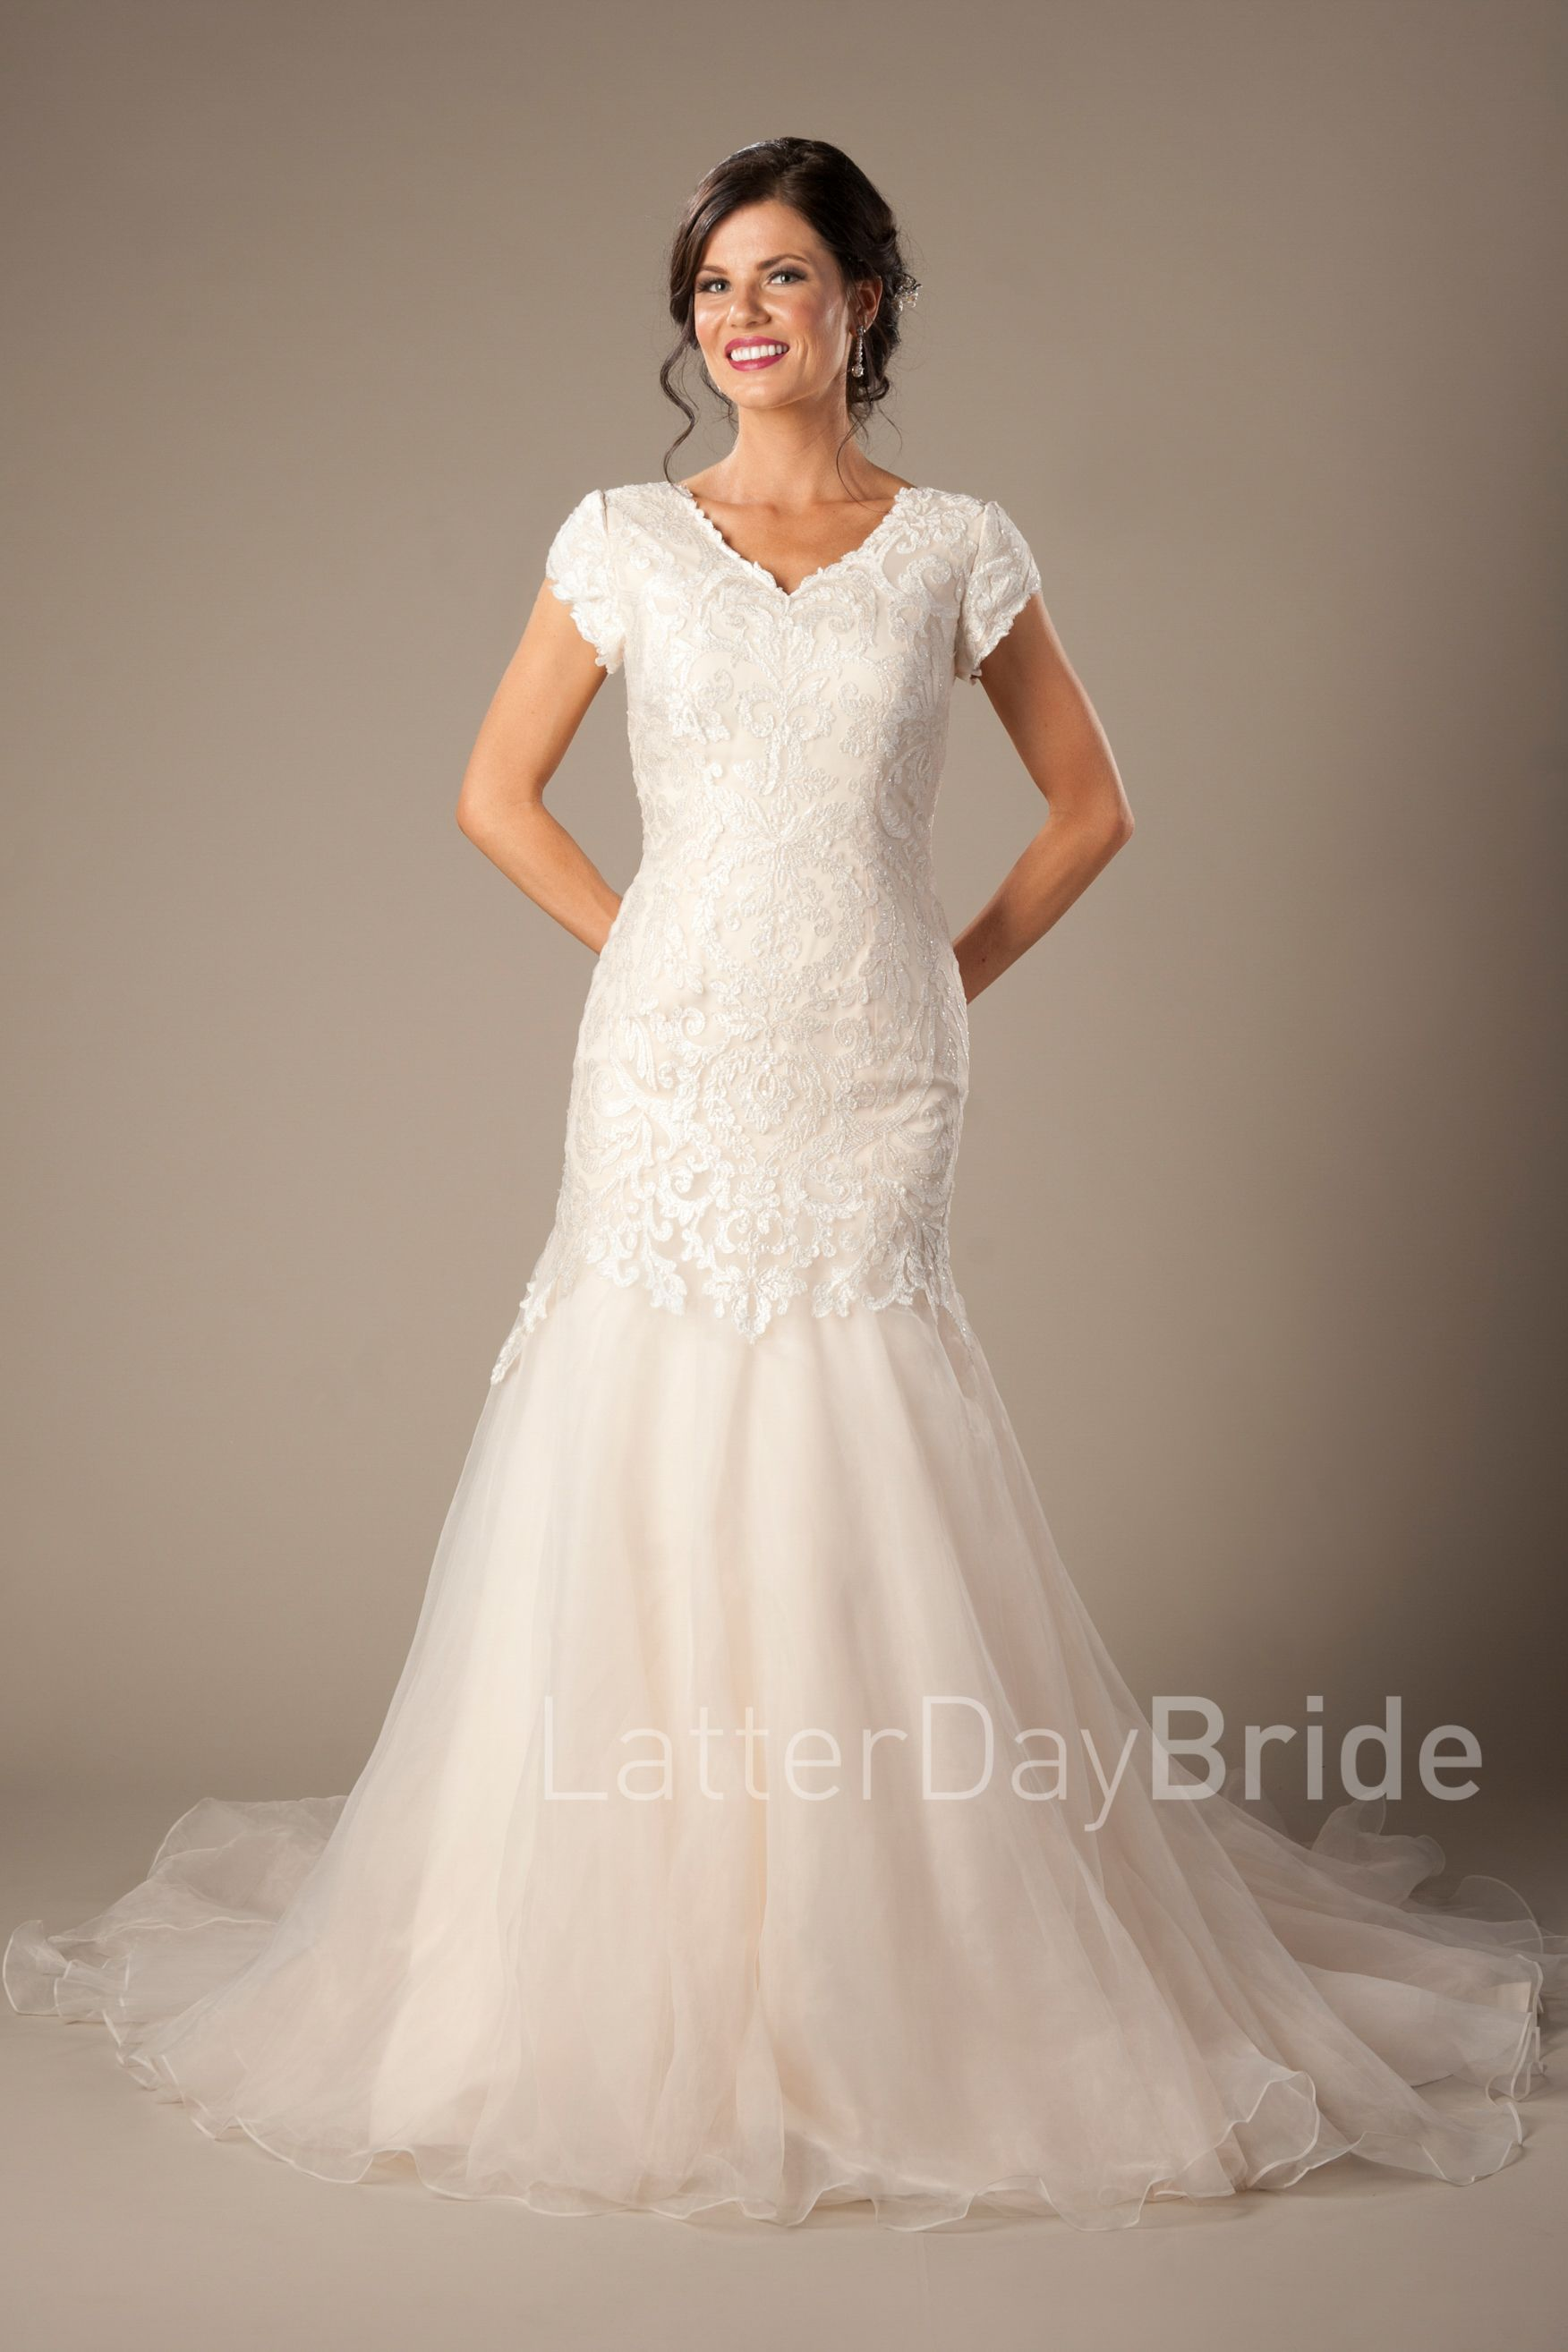 0e7d1f8a92d6 Langdon | Modest Wedding Dress by LatterDayBride & Prom | SLC Utah |  Worldwide Shipping | Fit & Flare | Lace | Sweetheart Neckline | Gown  available in White ...